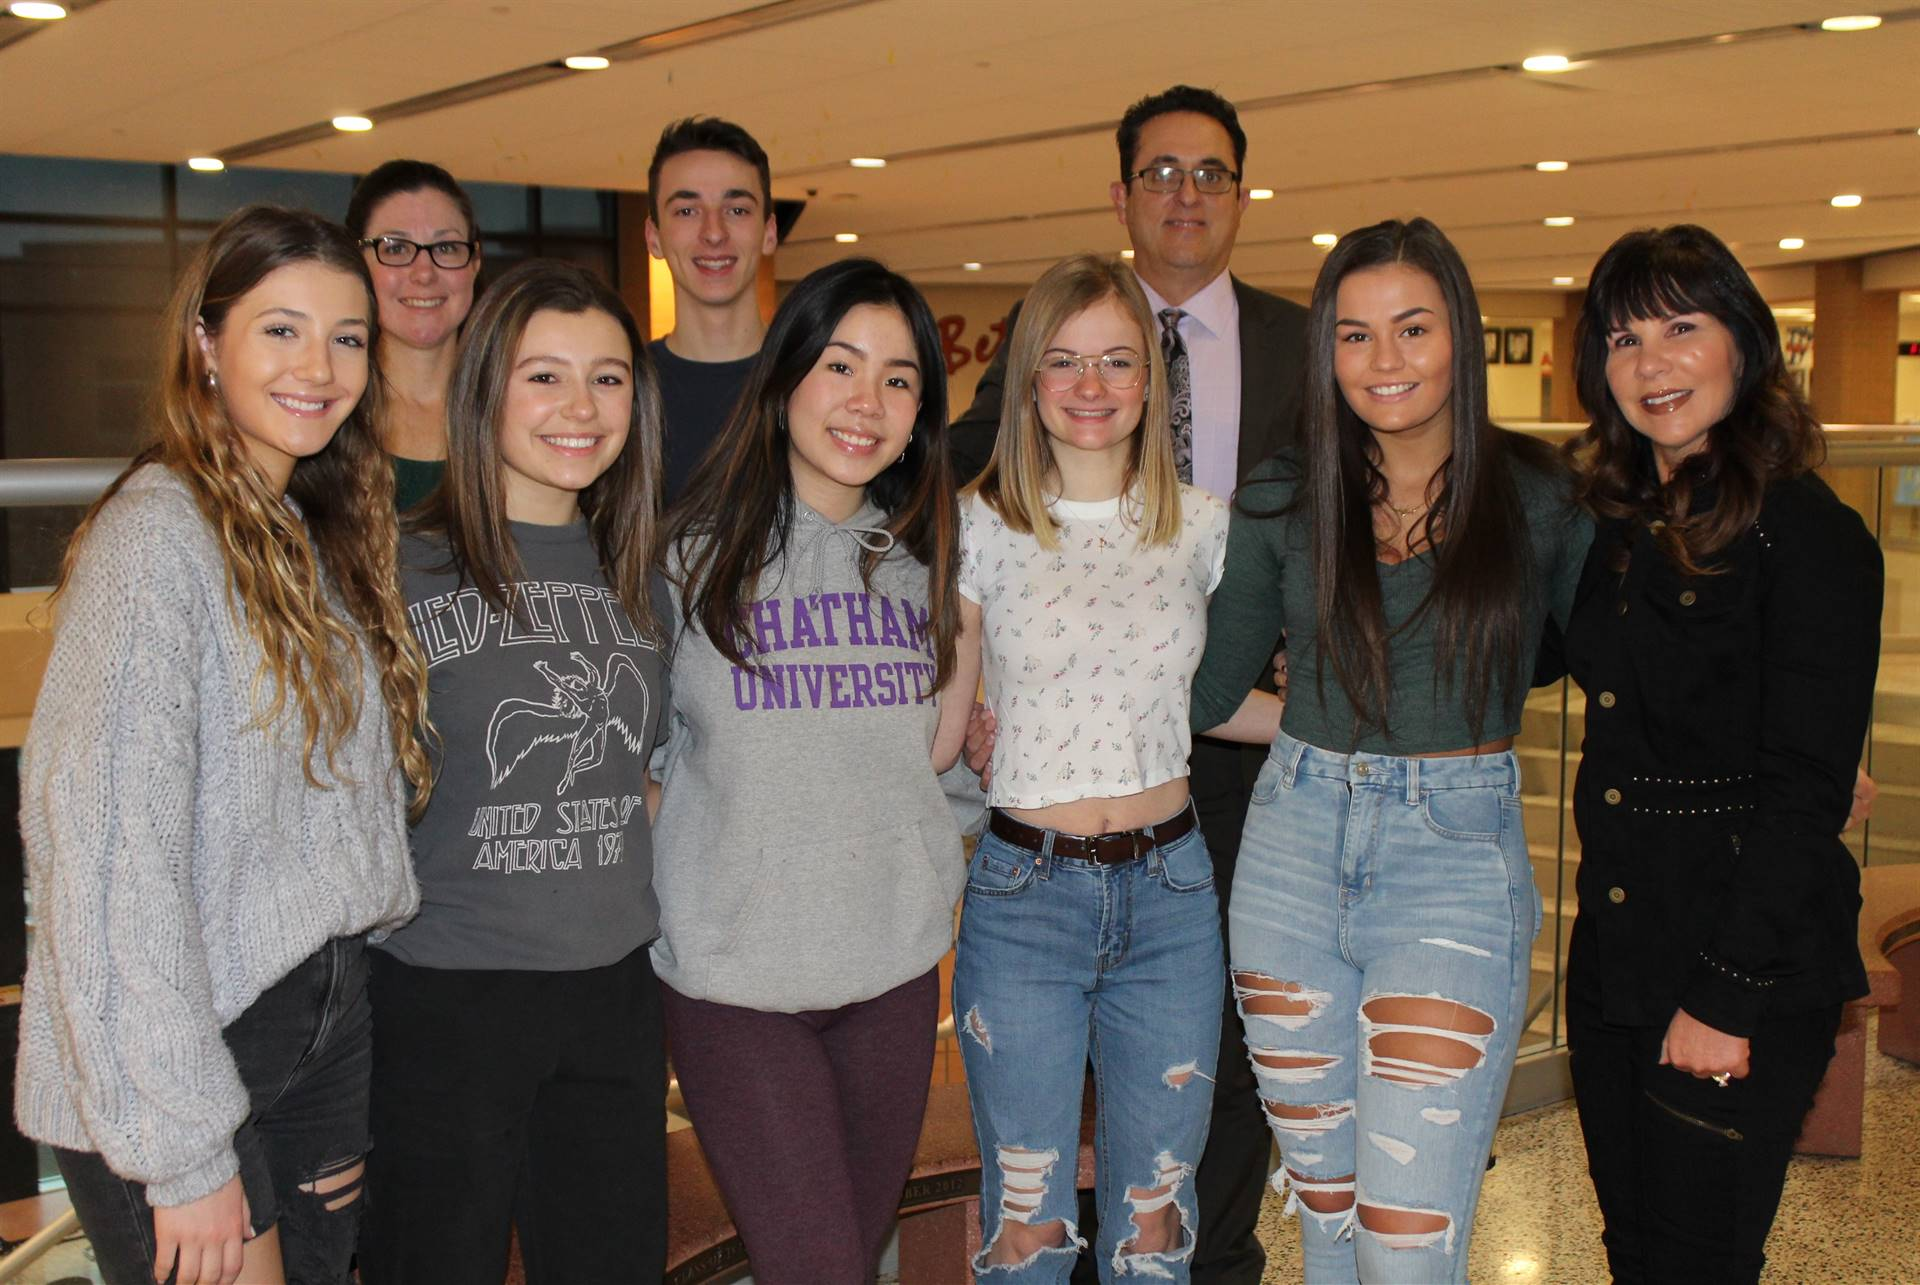 The BPHS PACS and DECA students and staff who worked on the Blood Drives